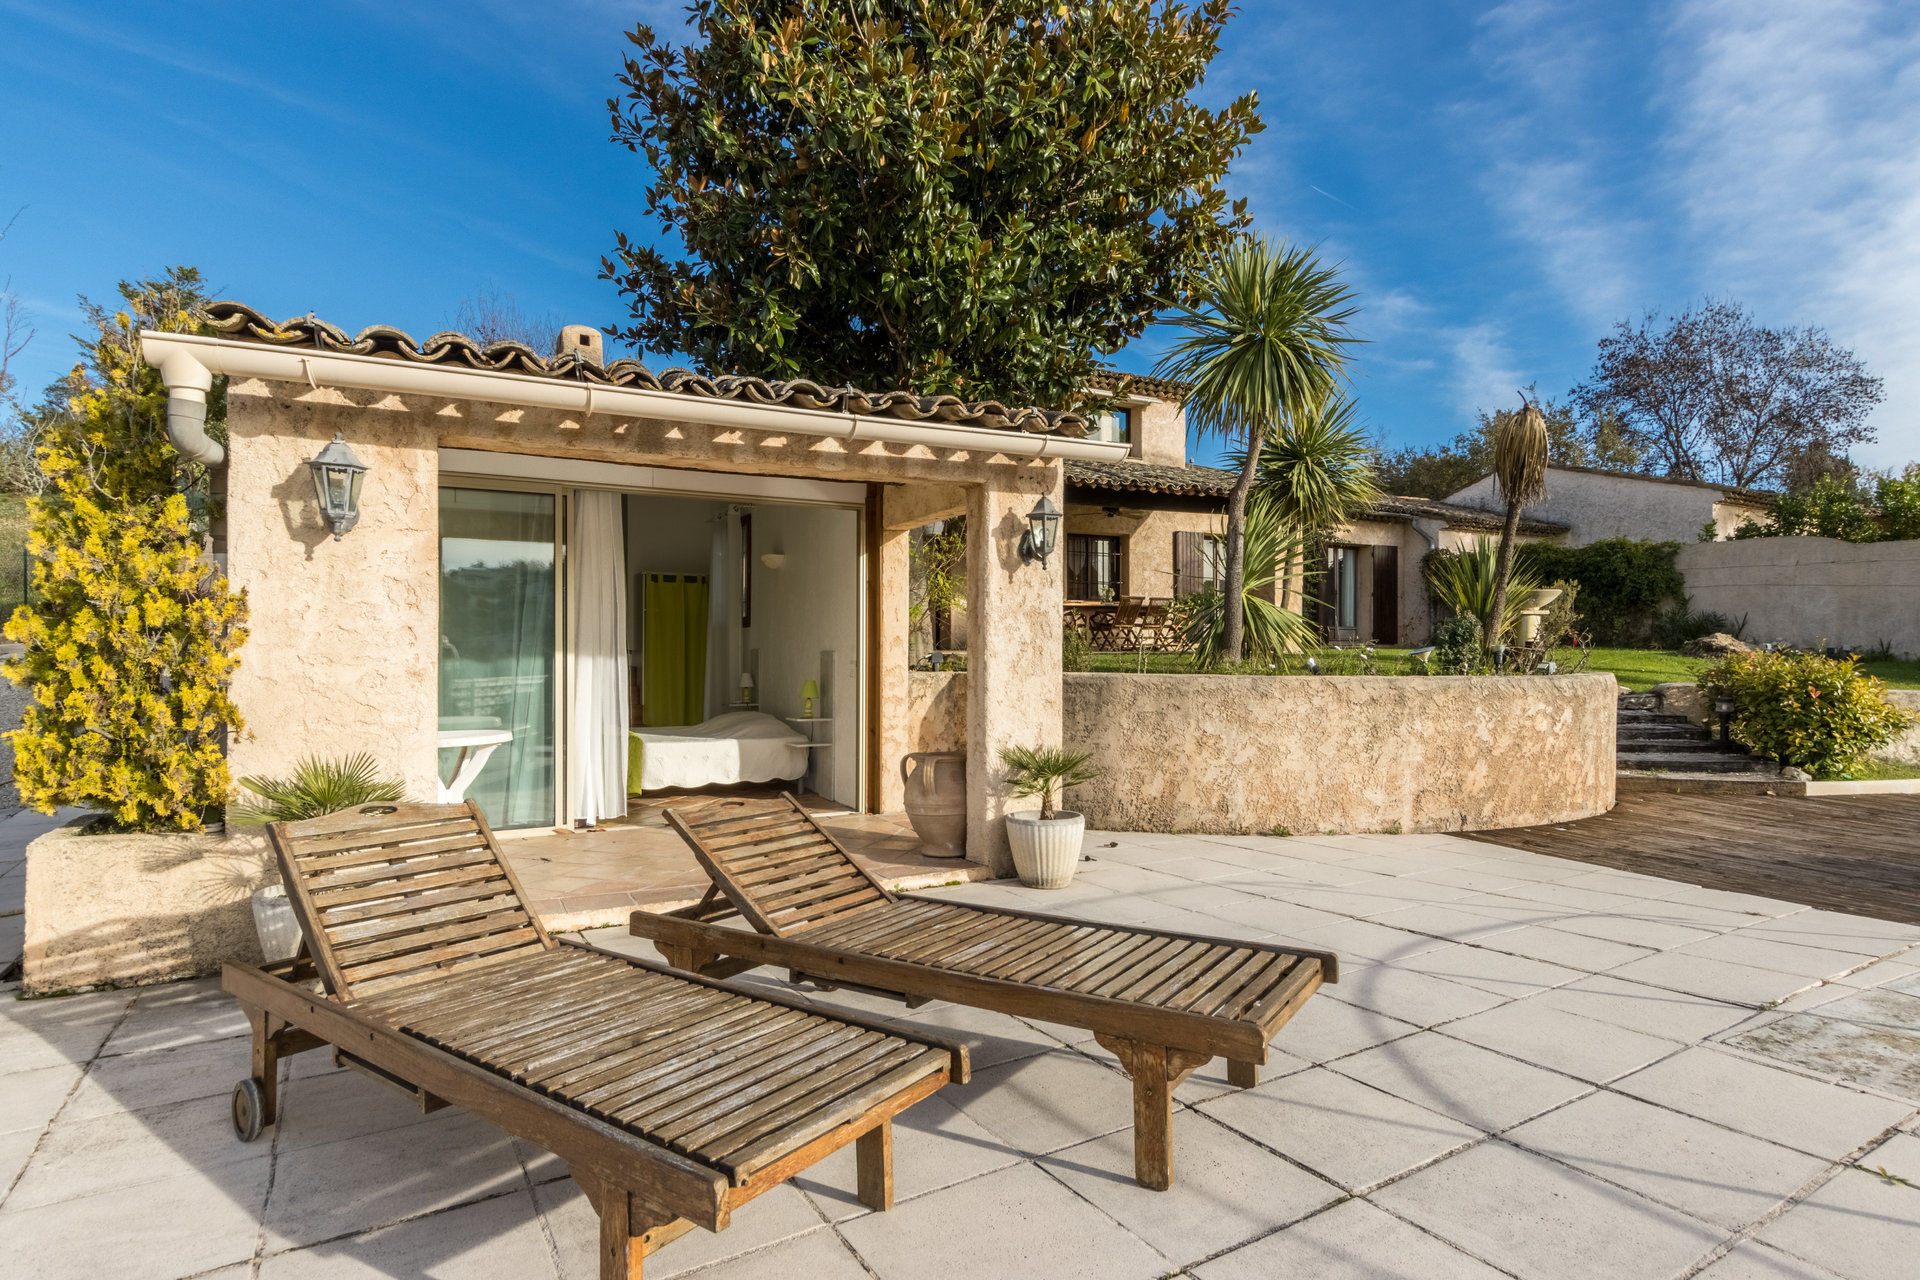 French riviera, St Paul de Vence, house of 200 sqm, swimming pool